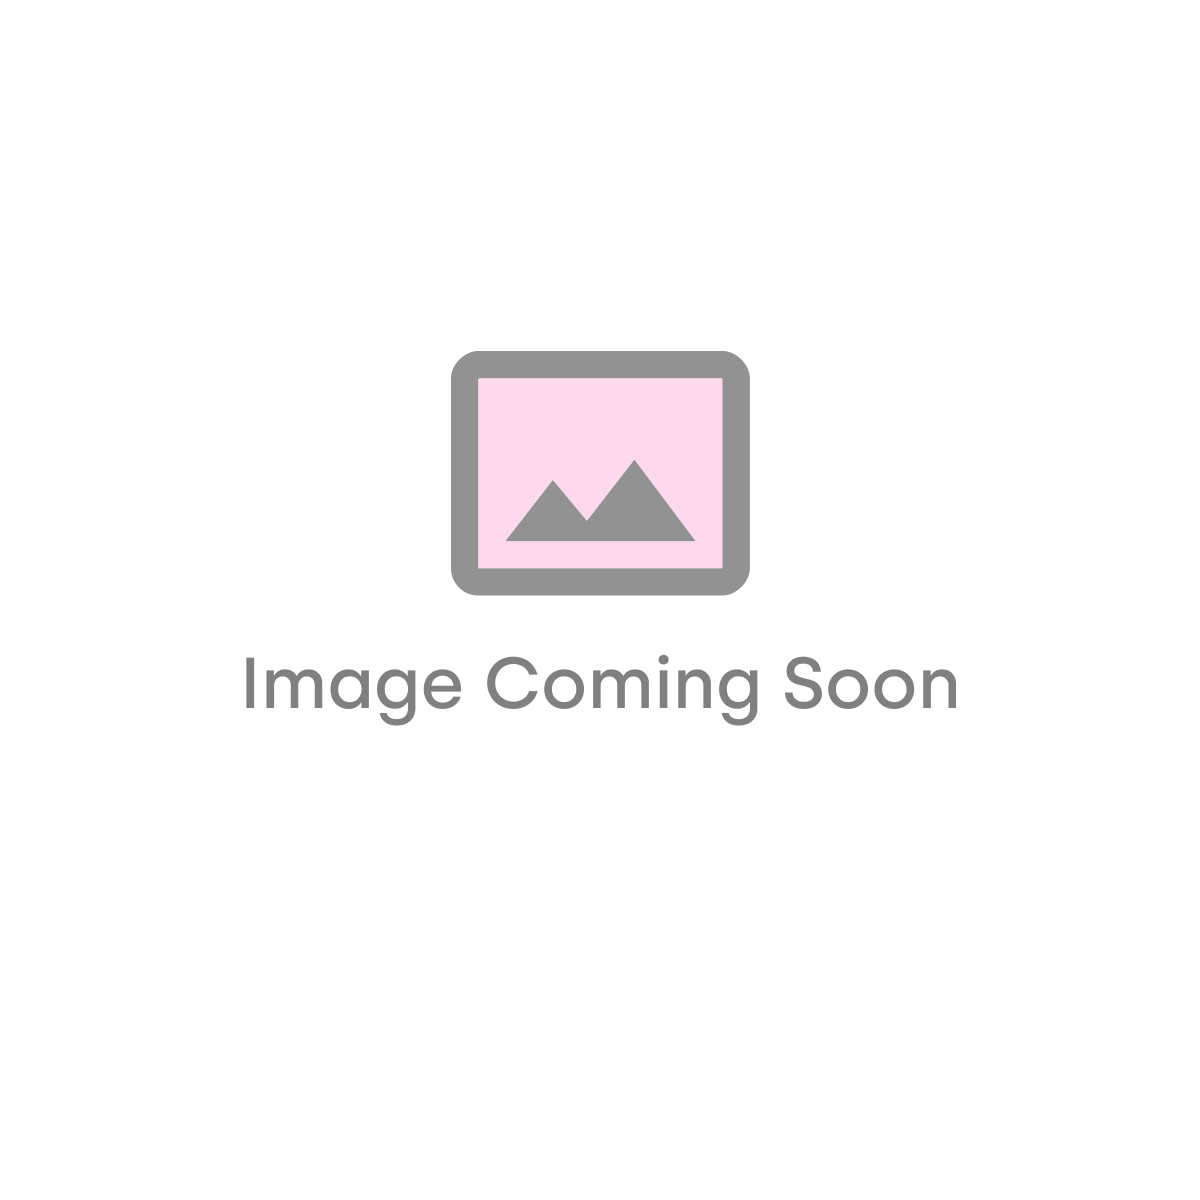 Kiimat Aqua 800mm Wetroom Panel - Mirror Finish (18721)